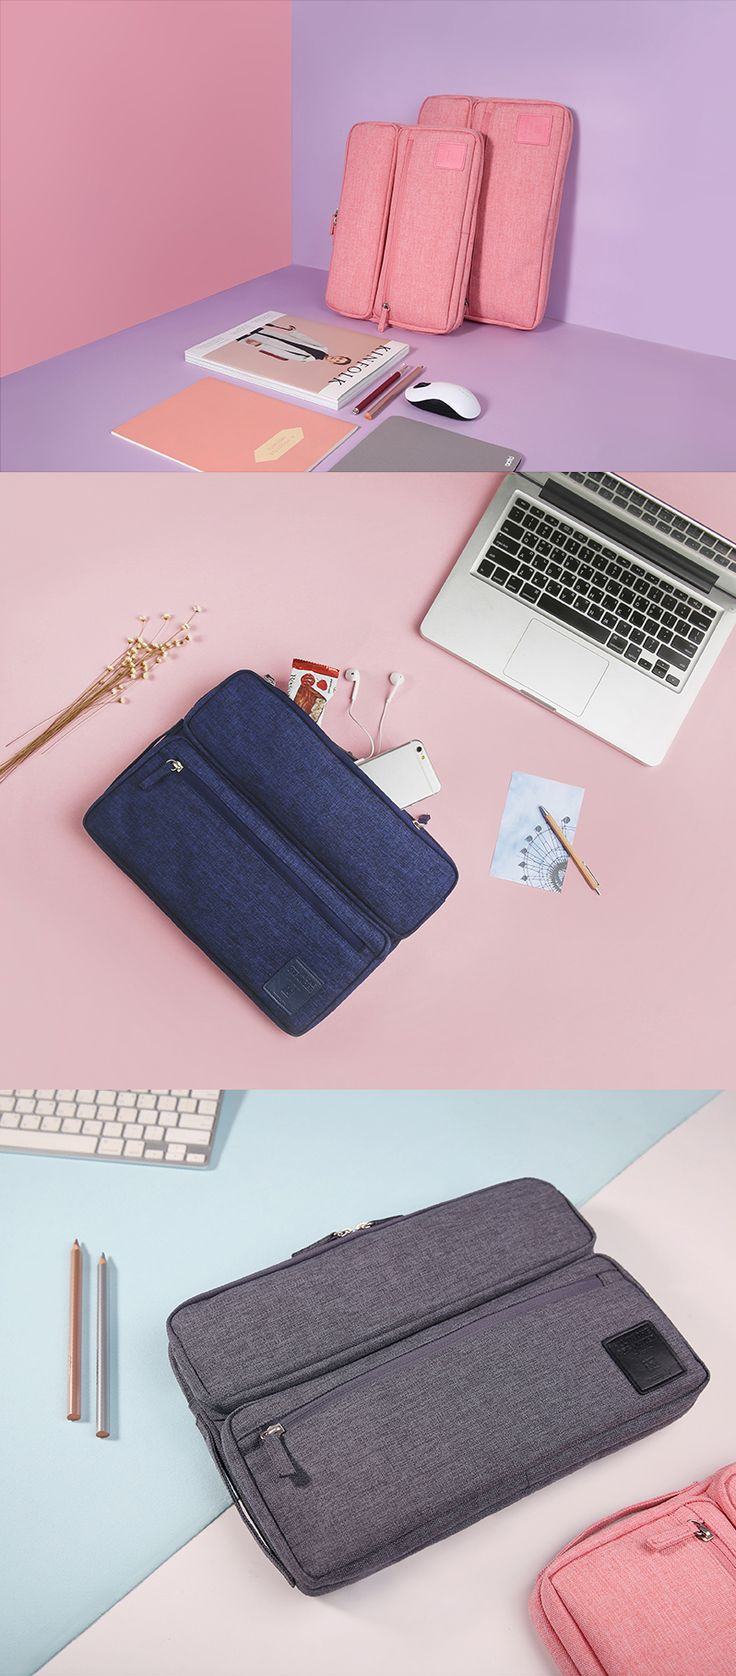 Struggling to keep everything organized & together? Need a laptop case that does both? Our new All-in-One Laptop Organizer does both & beyond! You can carry your laptop in the triple-padded main compartment & stash your phone, mouse, & more in the 2 large front pockets. Small items like your earbuds & USB drive can go in the inner mesh pockets so you'll know exactly where to find them. Use the main or side handle to easily carry this cute organizer to work, school, or travel in one simple…